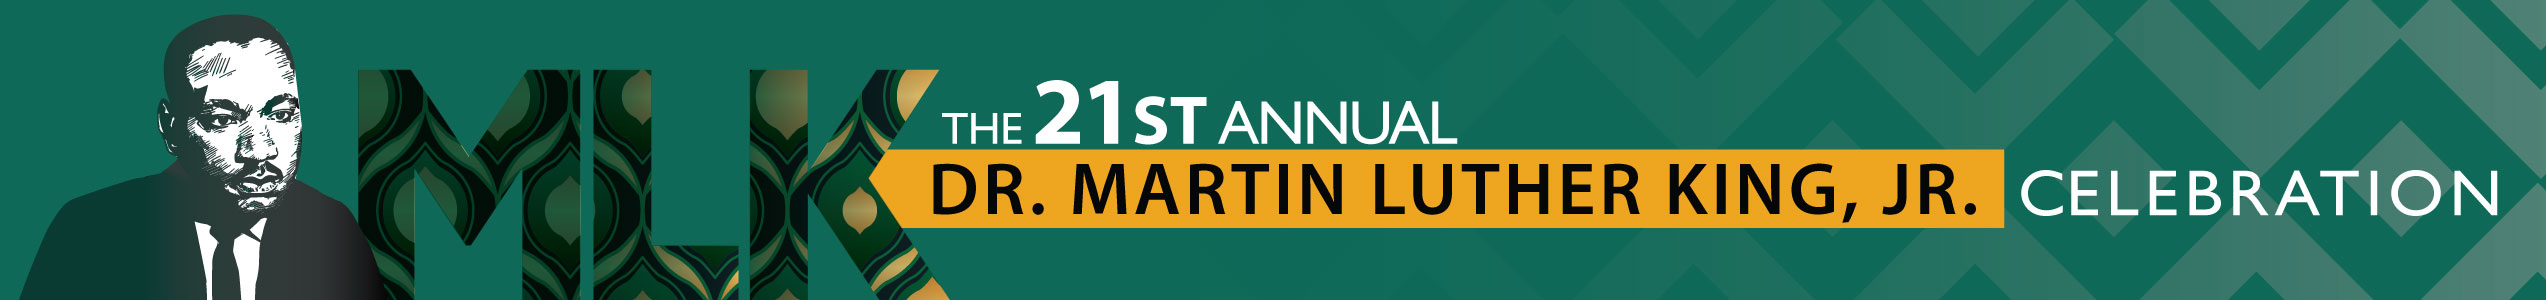 The 21st Annual Dr. Martin Luther King, Jr. Celebration